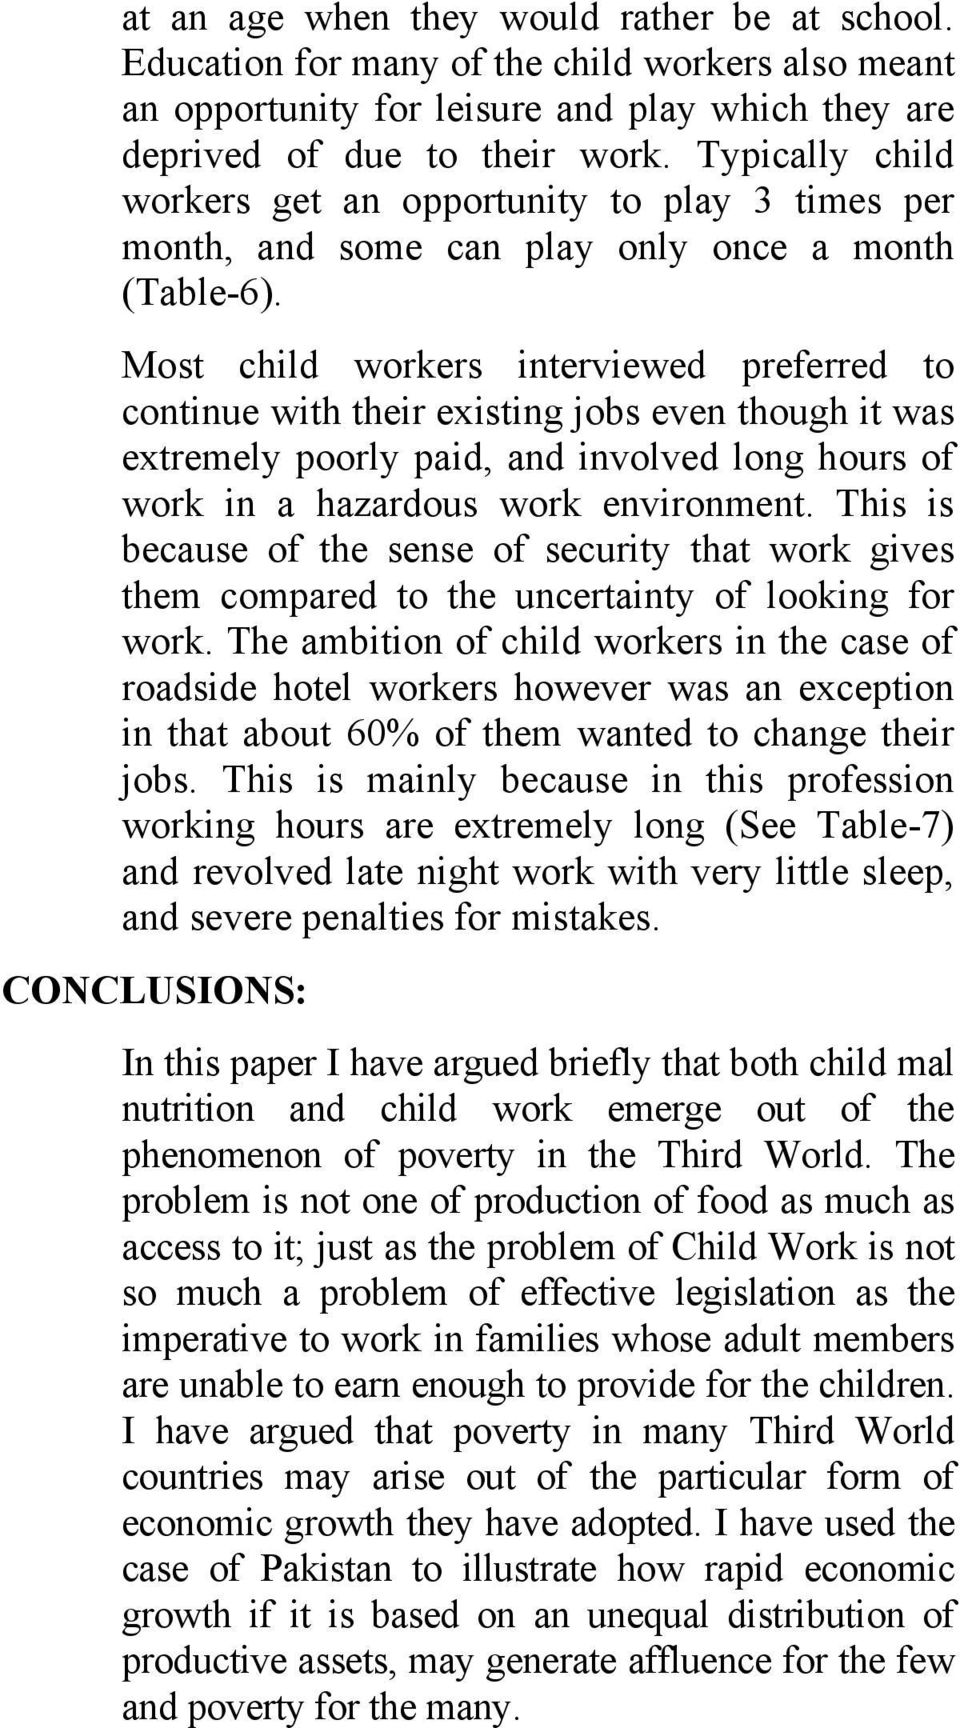 Most child workers interviewed preferred to continue with their existing jobs even though it was extremely poorly paid, and involved long hours of work in a hazardous work environment.